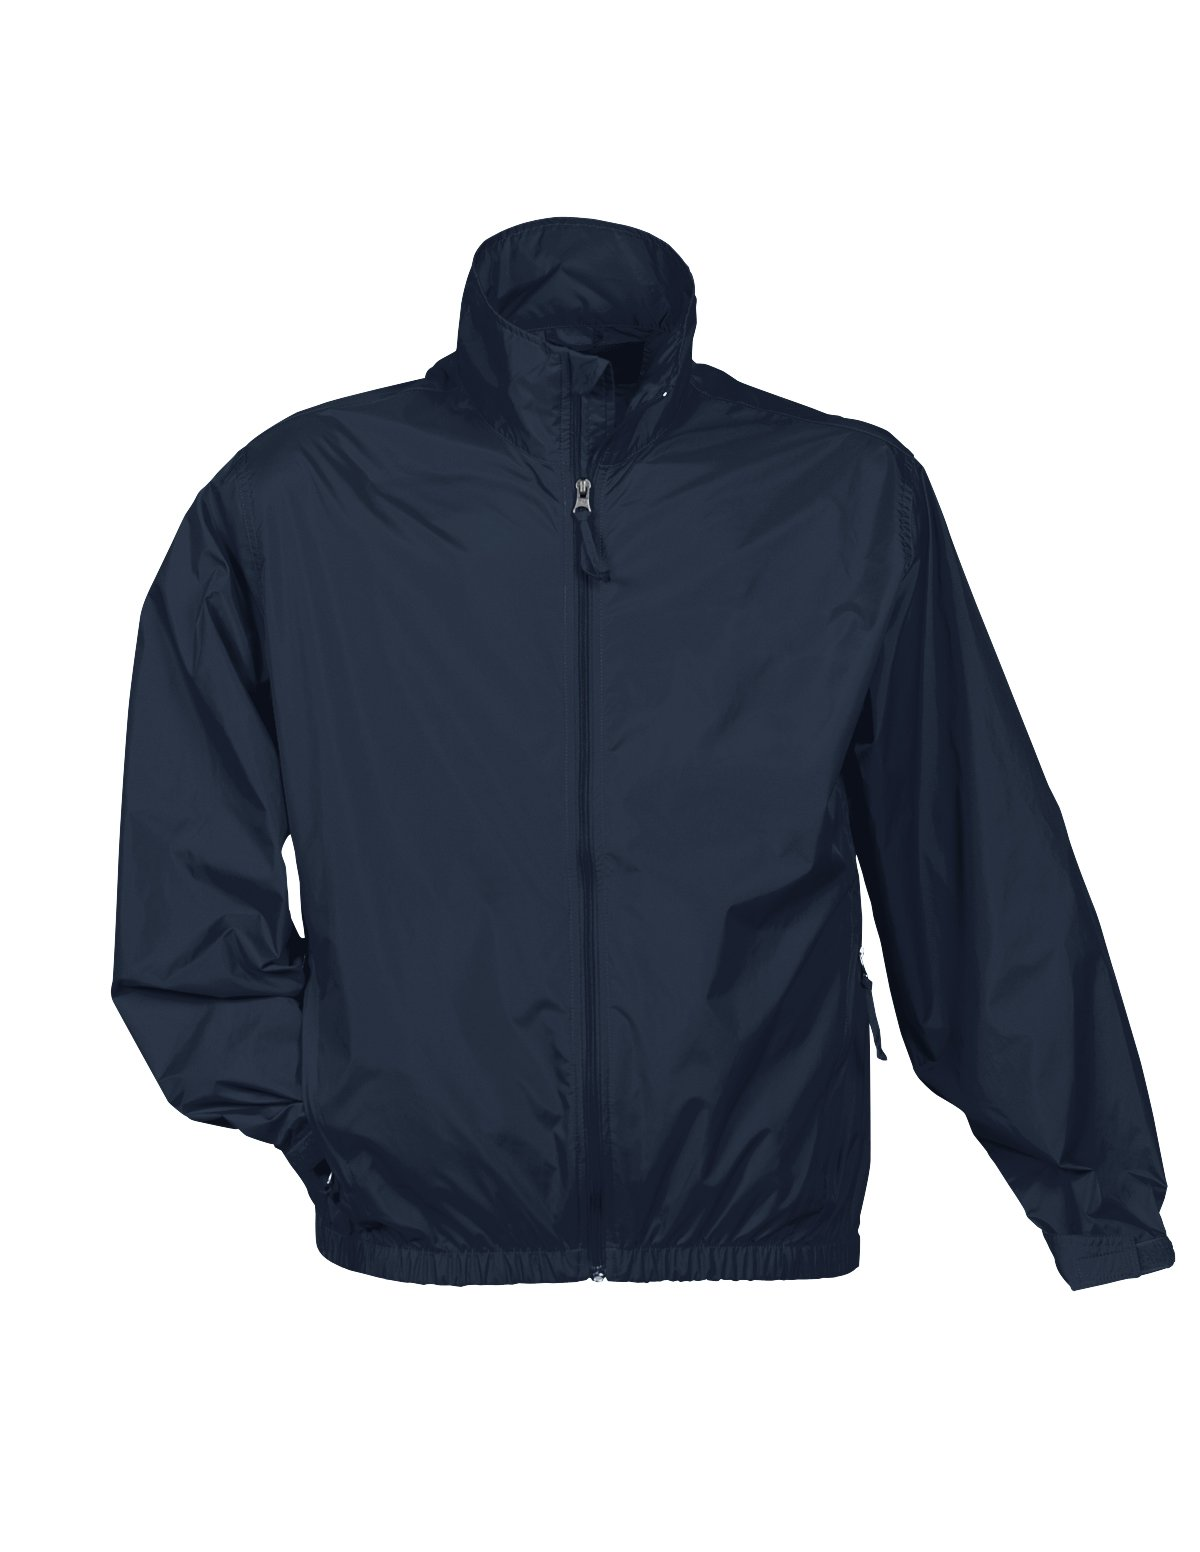 Tri Mountain Men's Lightweight Water Resistant Jacket, Navy, XX-Large by Tri-Mountain